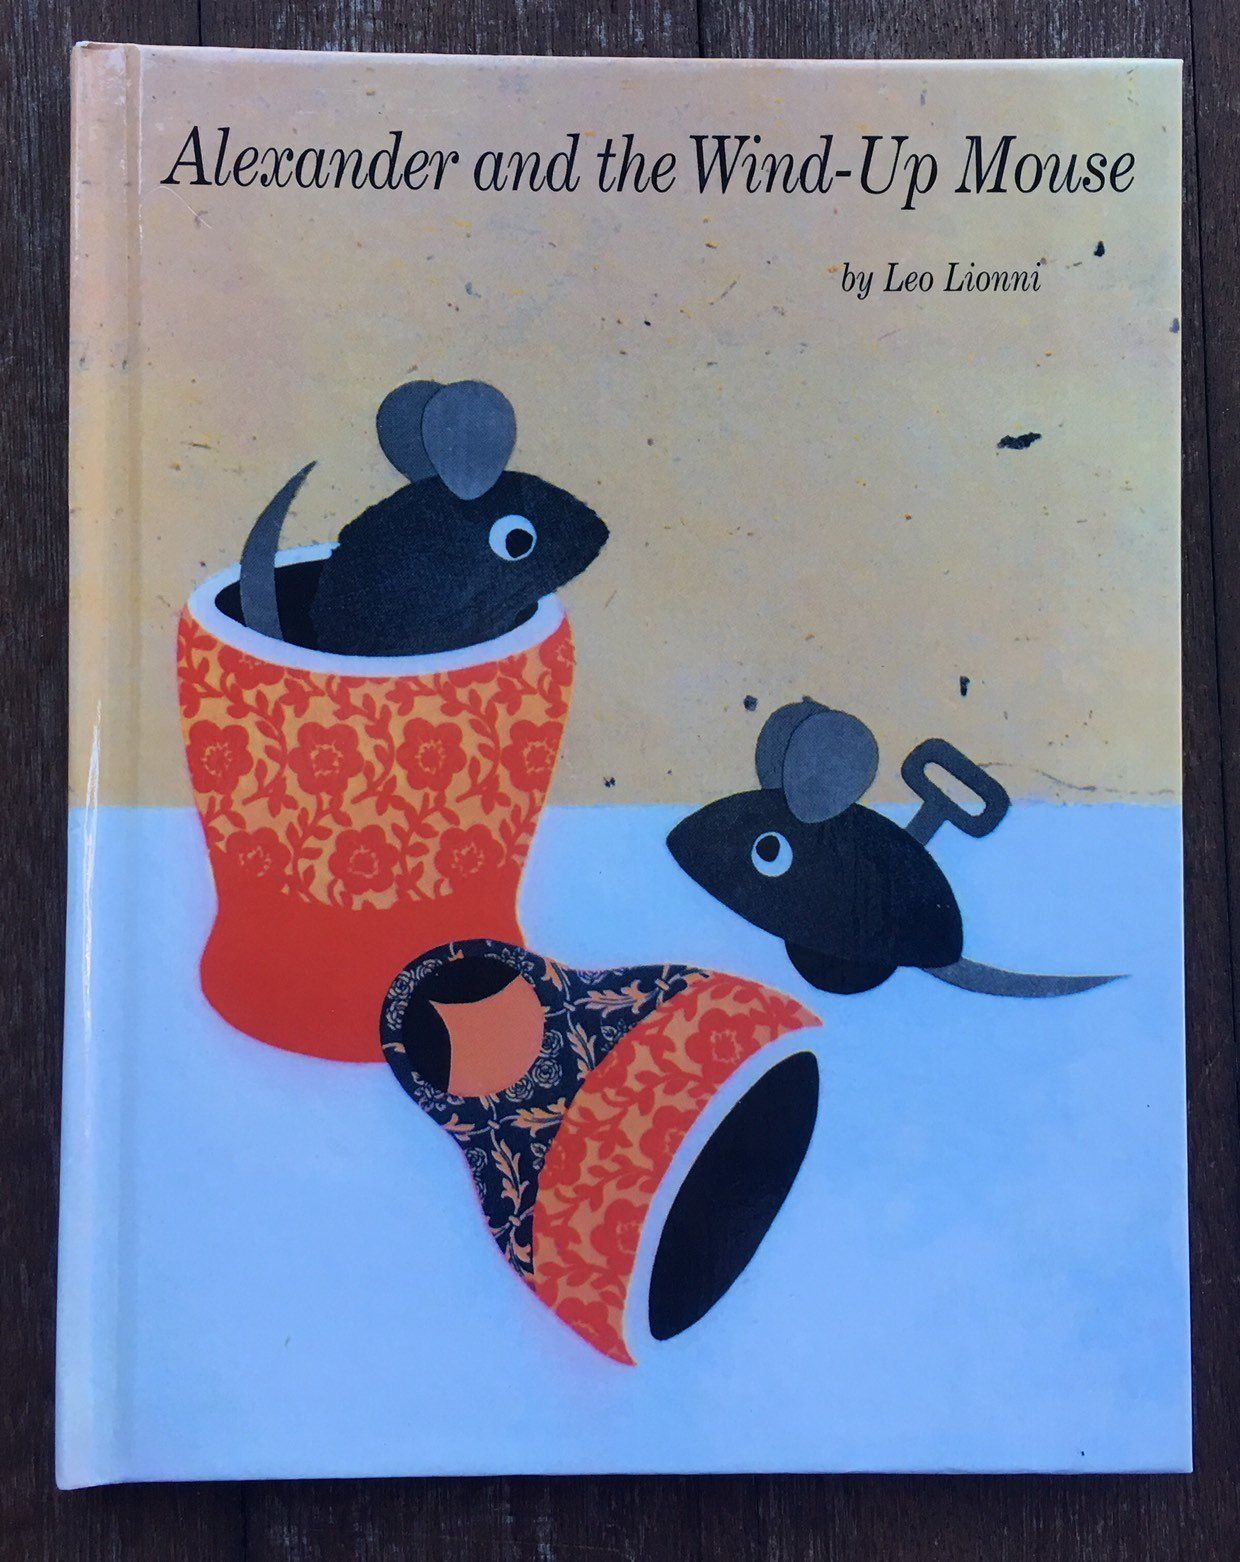 Alexander and the Wind-Up Mouse, Leo Lionni, Weekly Reader, newer hardcover  edition, children's book by peaseporridgepress1 on Etsy